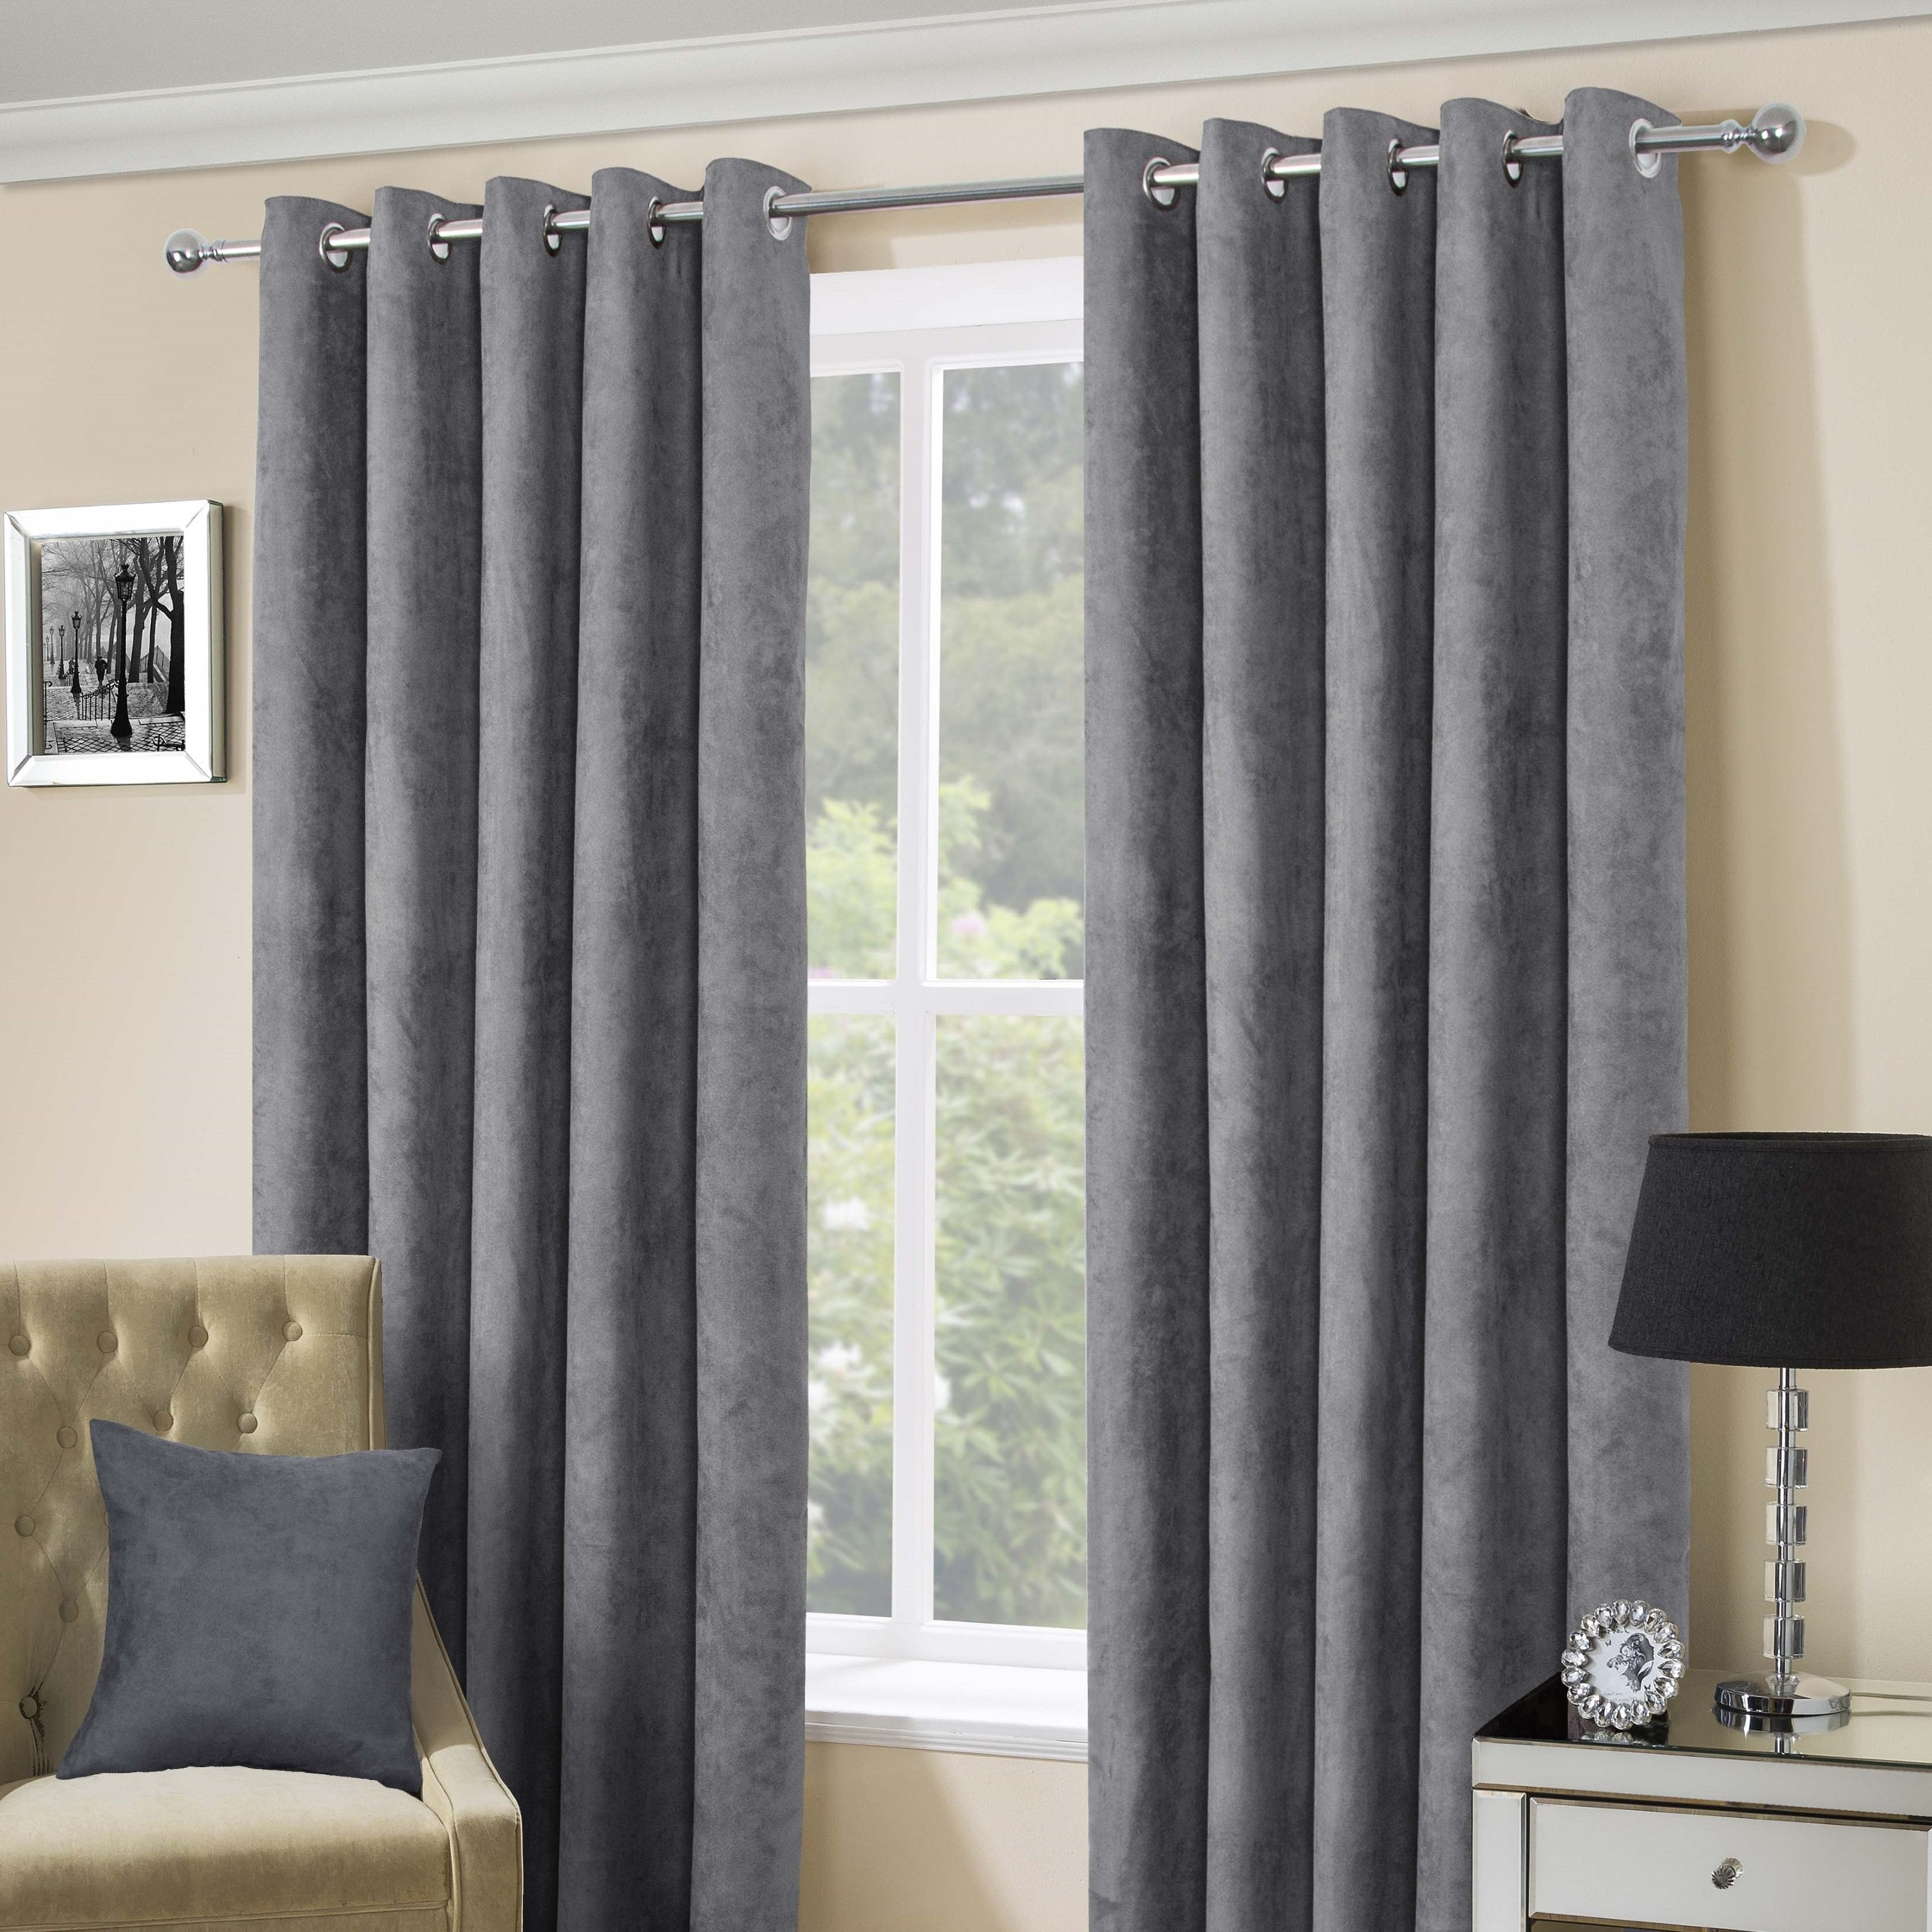 Suede Casa Silver Faux Suede Eyelet Top Curtains